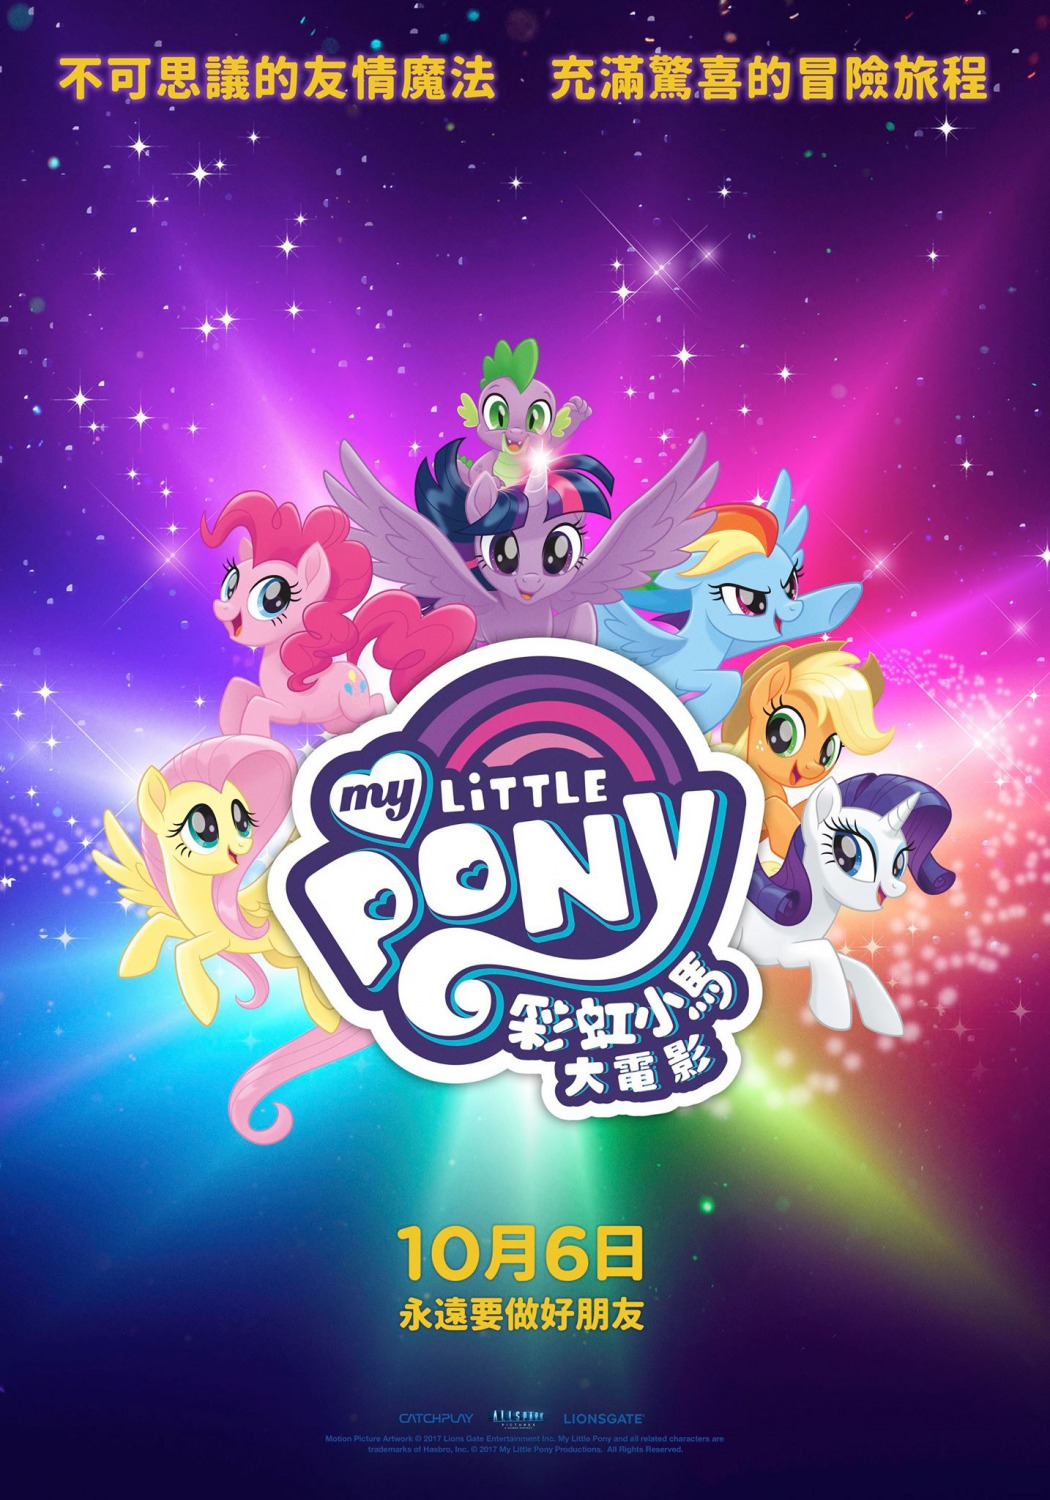 My little pony movie poster 2017